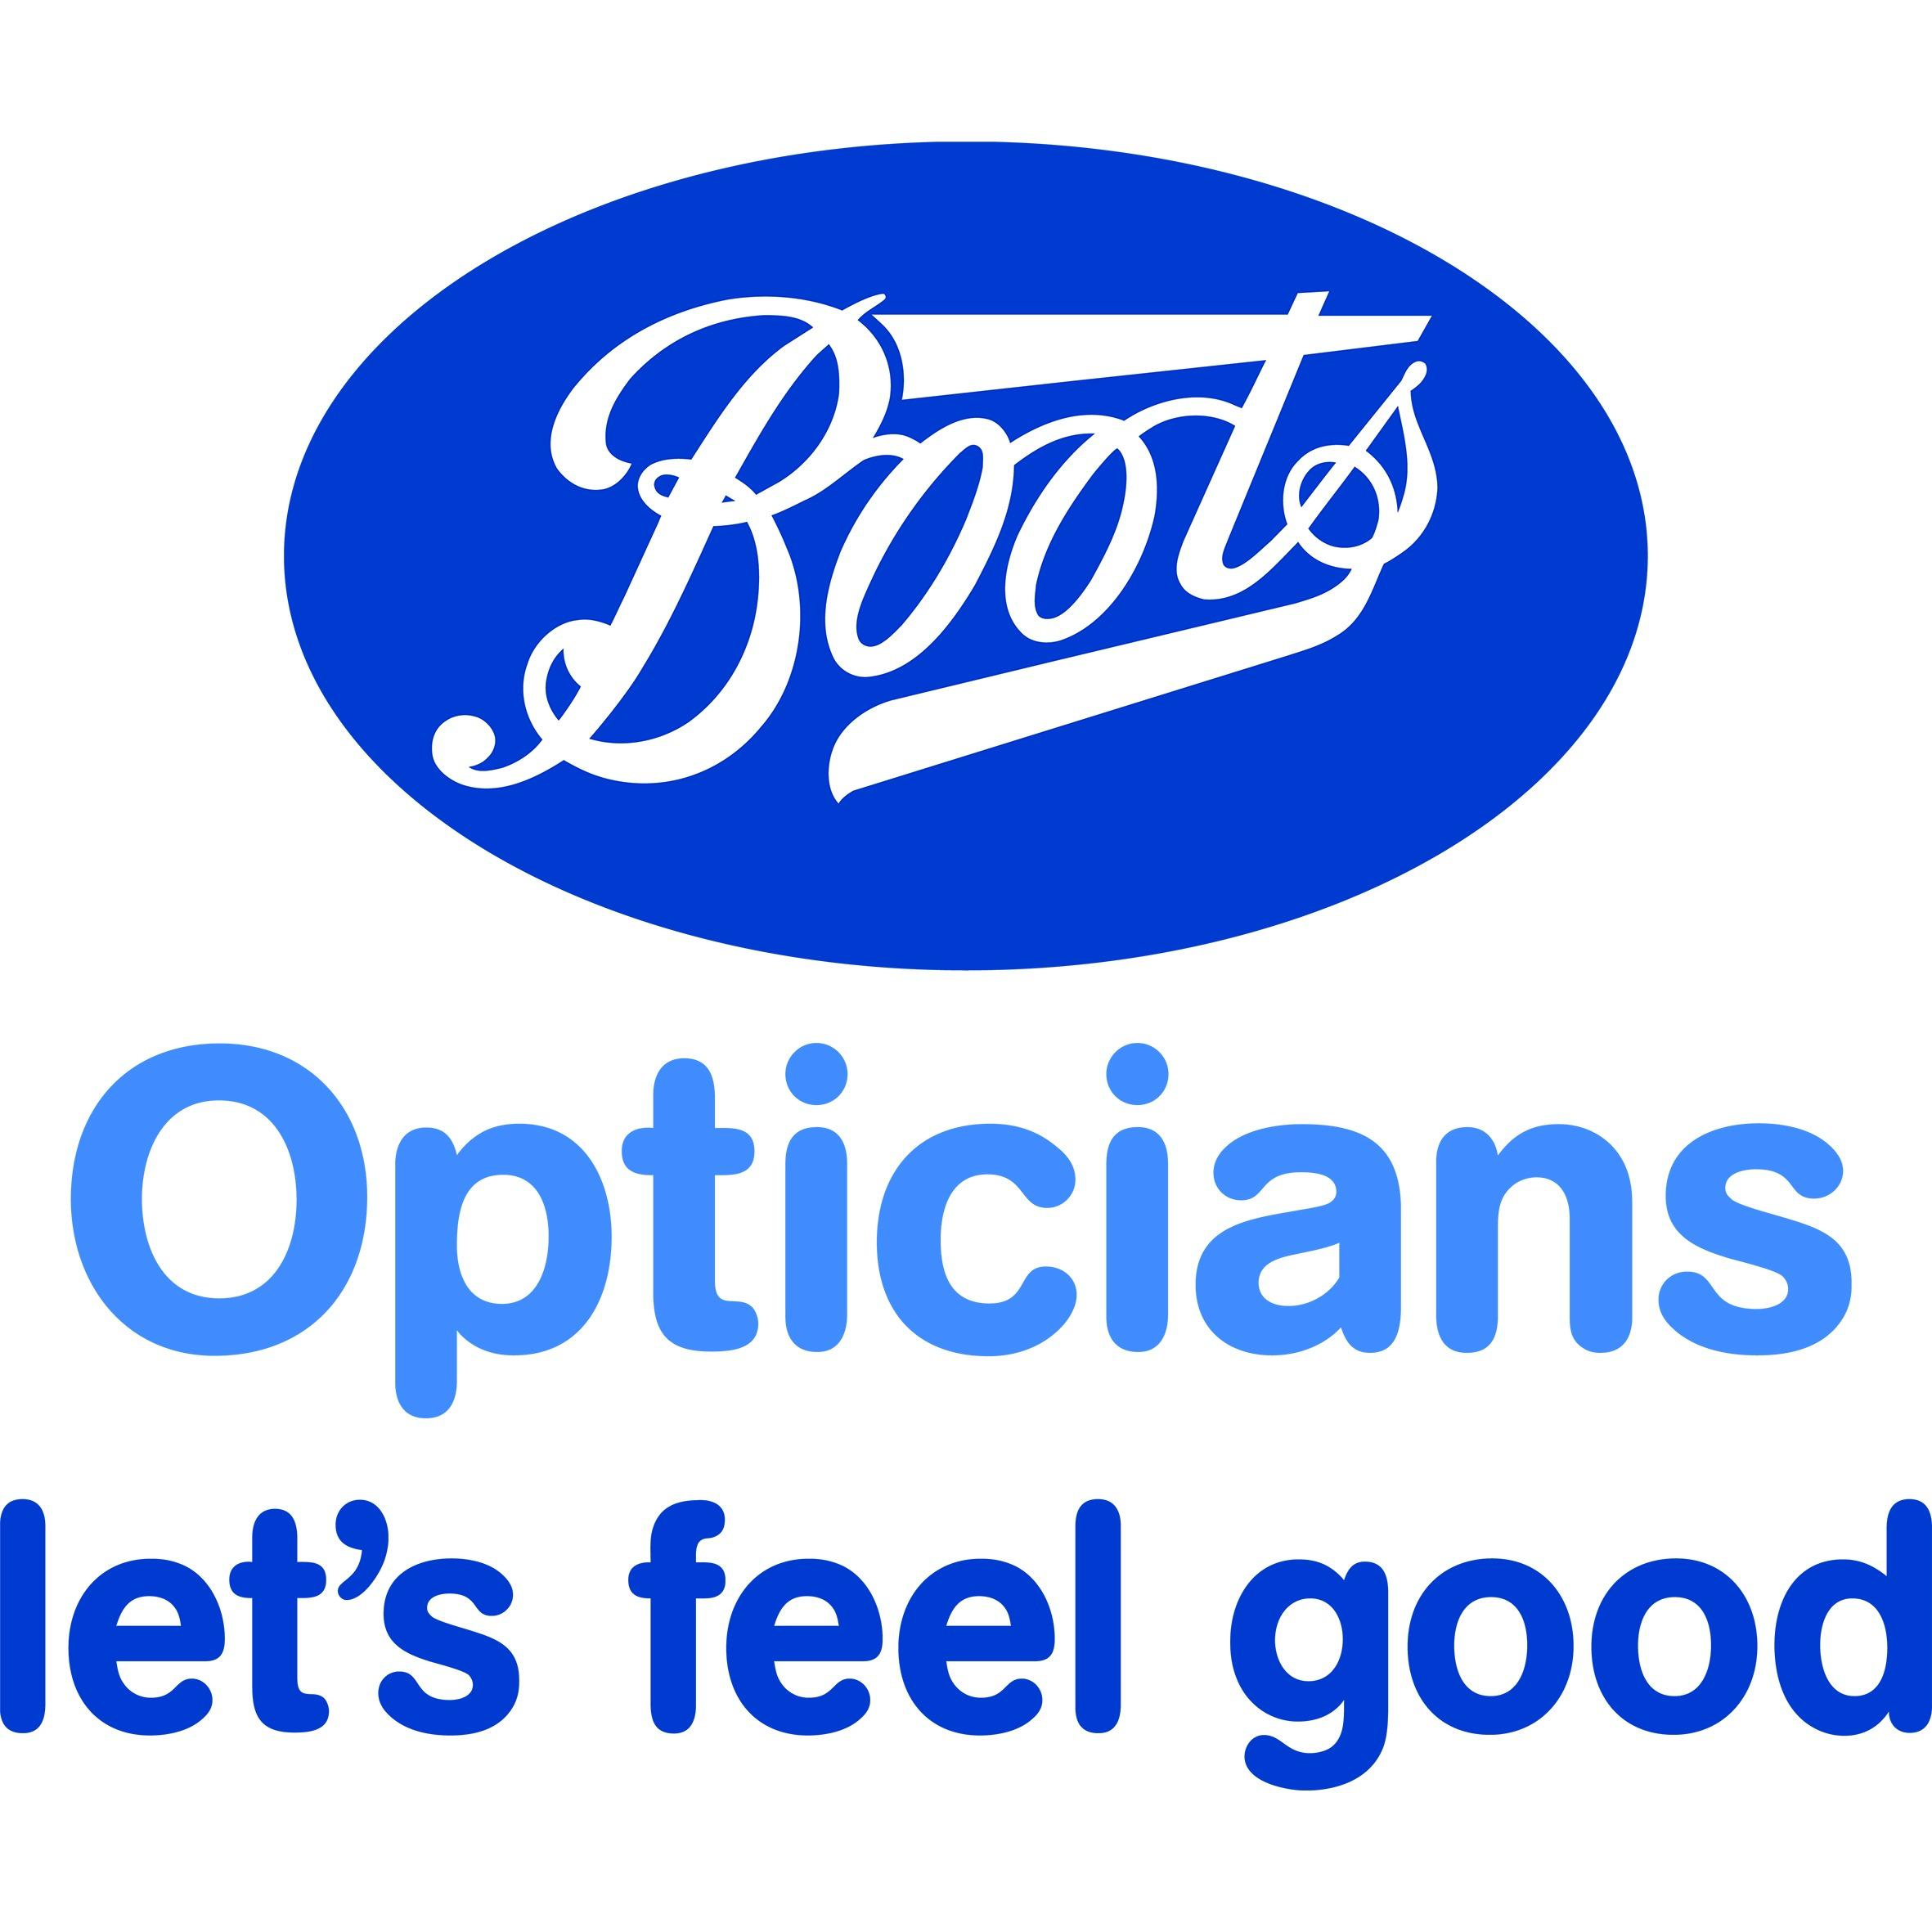 Boots Opticians - London, London SW19 2TY - 03451 253776 | ShowMeLocal.com